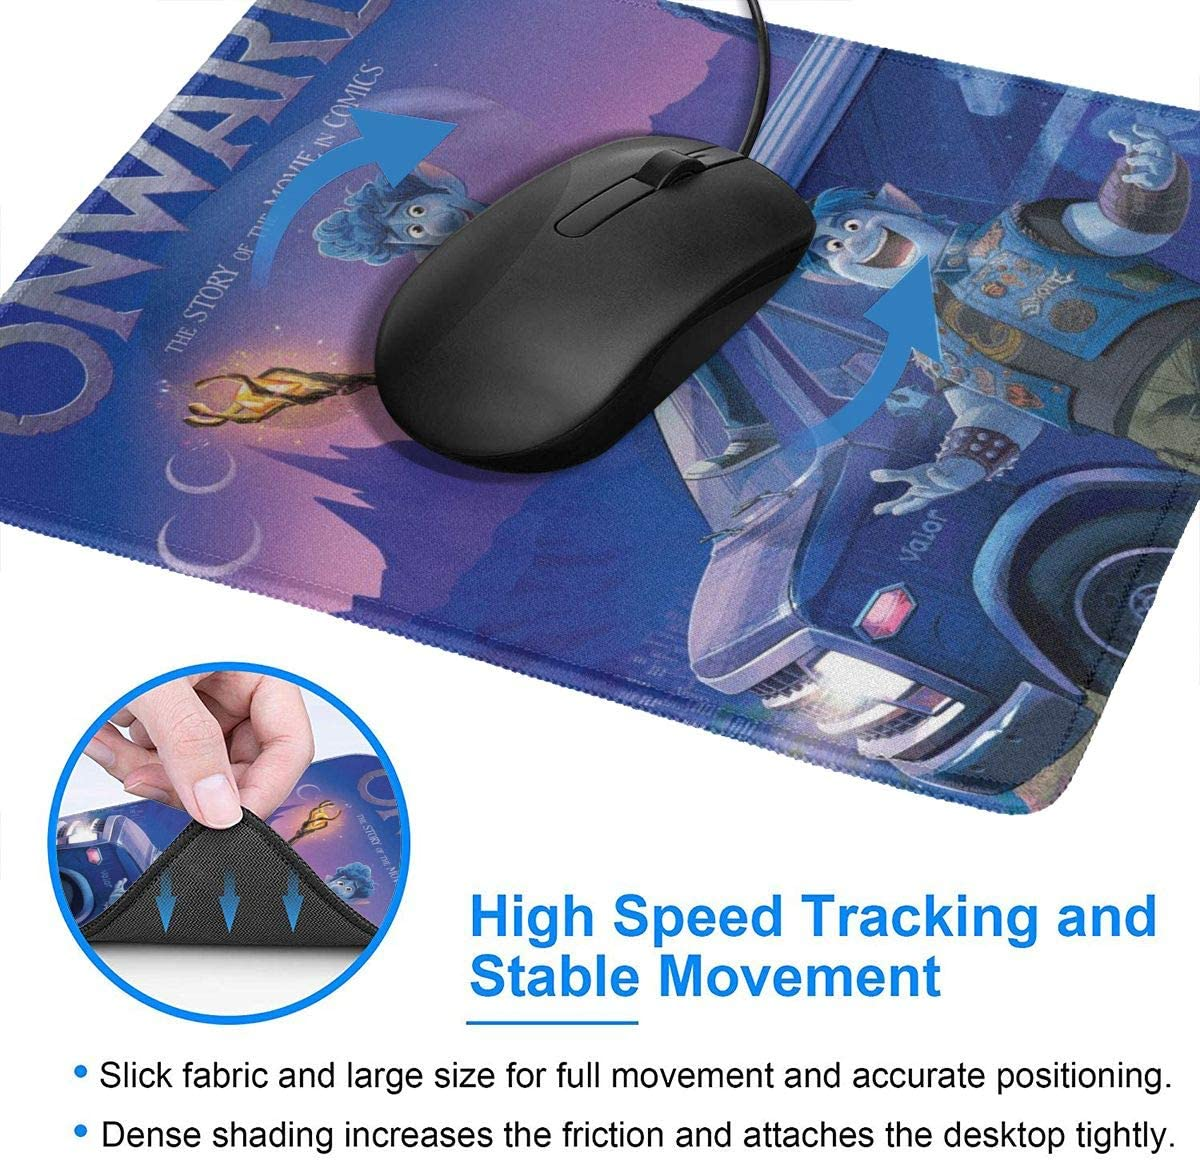 Smooth Cloth Non-Slip Rubber Base Art Printed Pattern Mouse Mat with Stitched Edges,On-Ward Merch On-Ward Mouse Pad